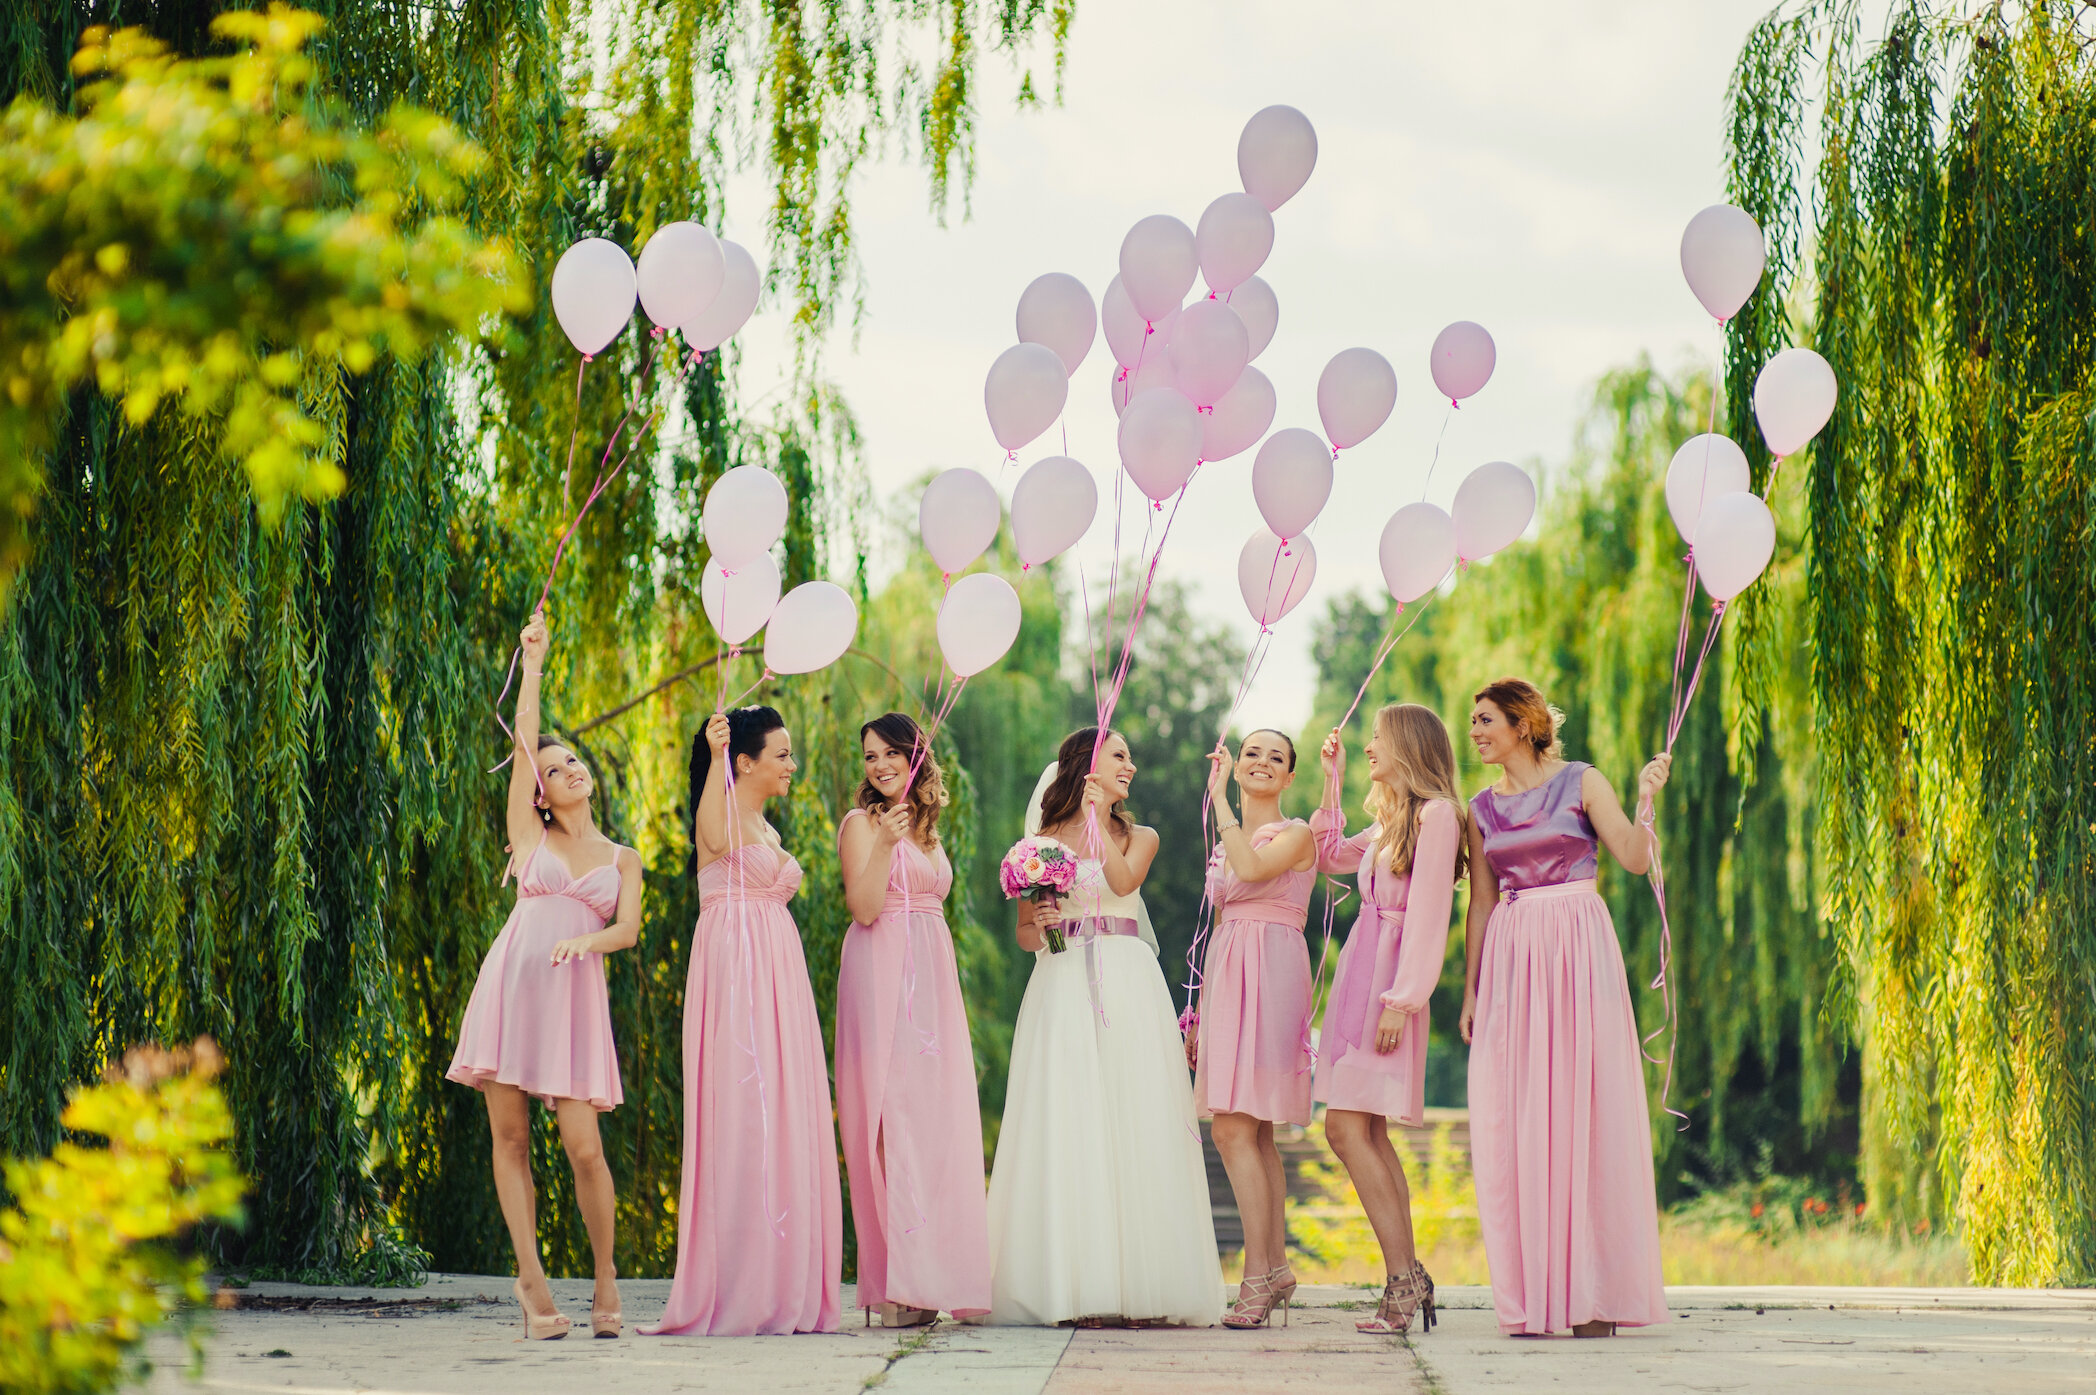 bridal party in pink dresses with balloons.jpg